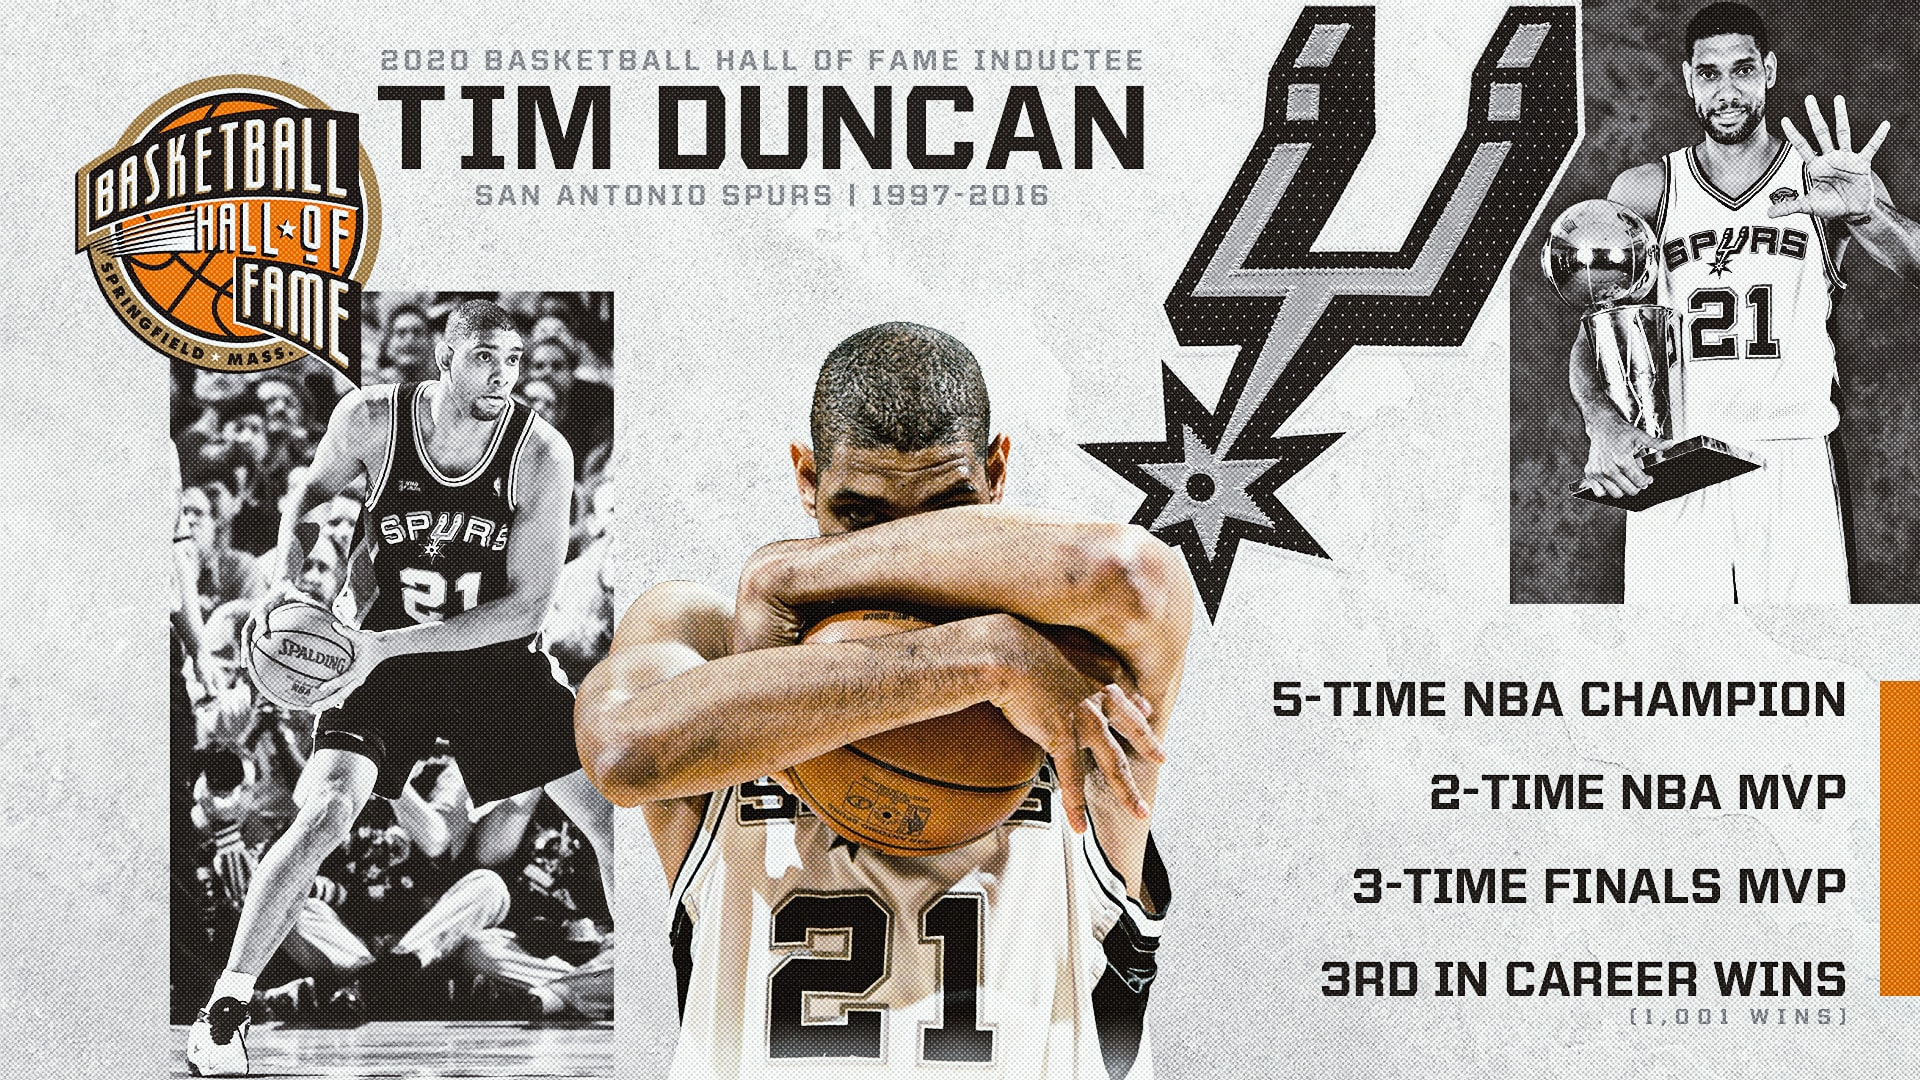 Tim Duncan Inducted into Hall of Fame